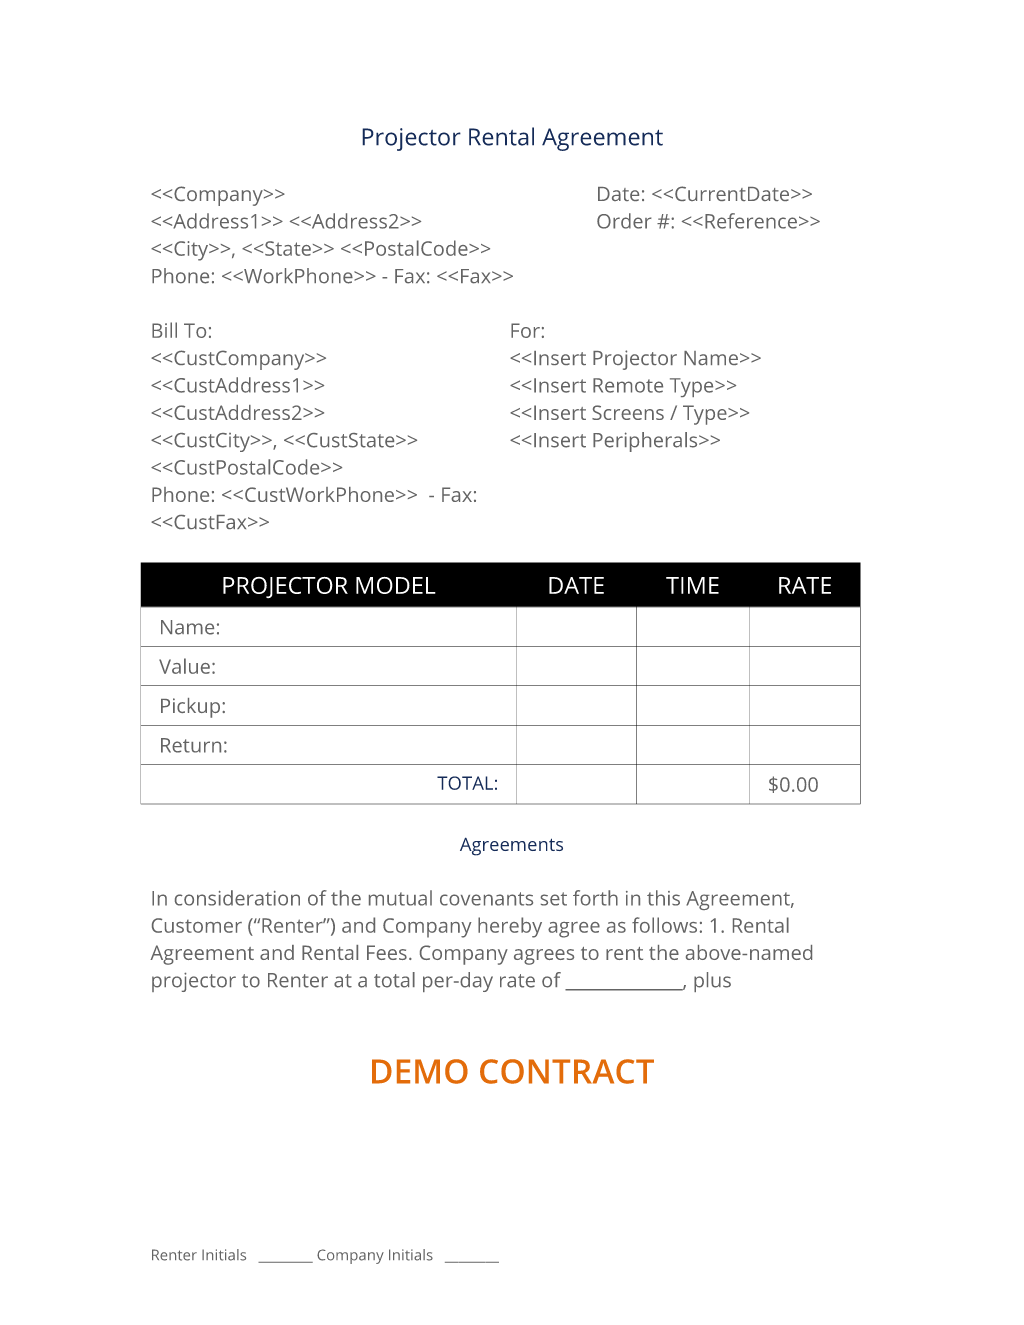 Projector Rental Agreement